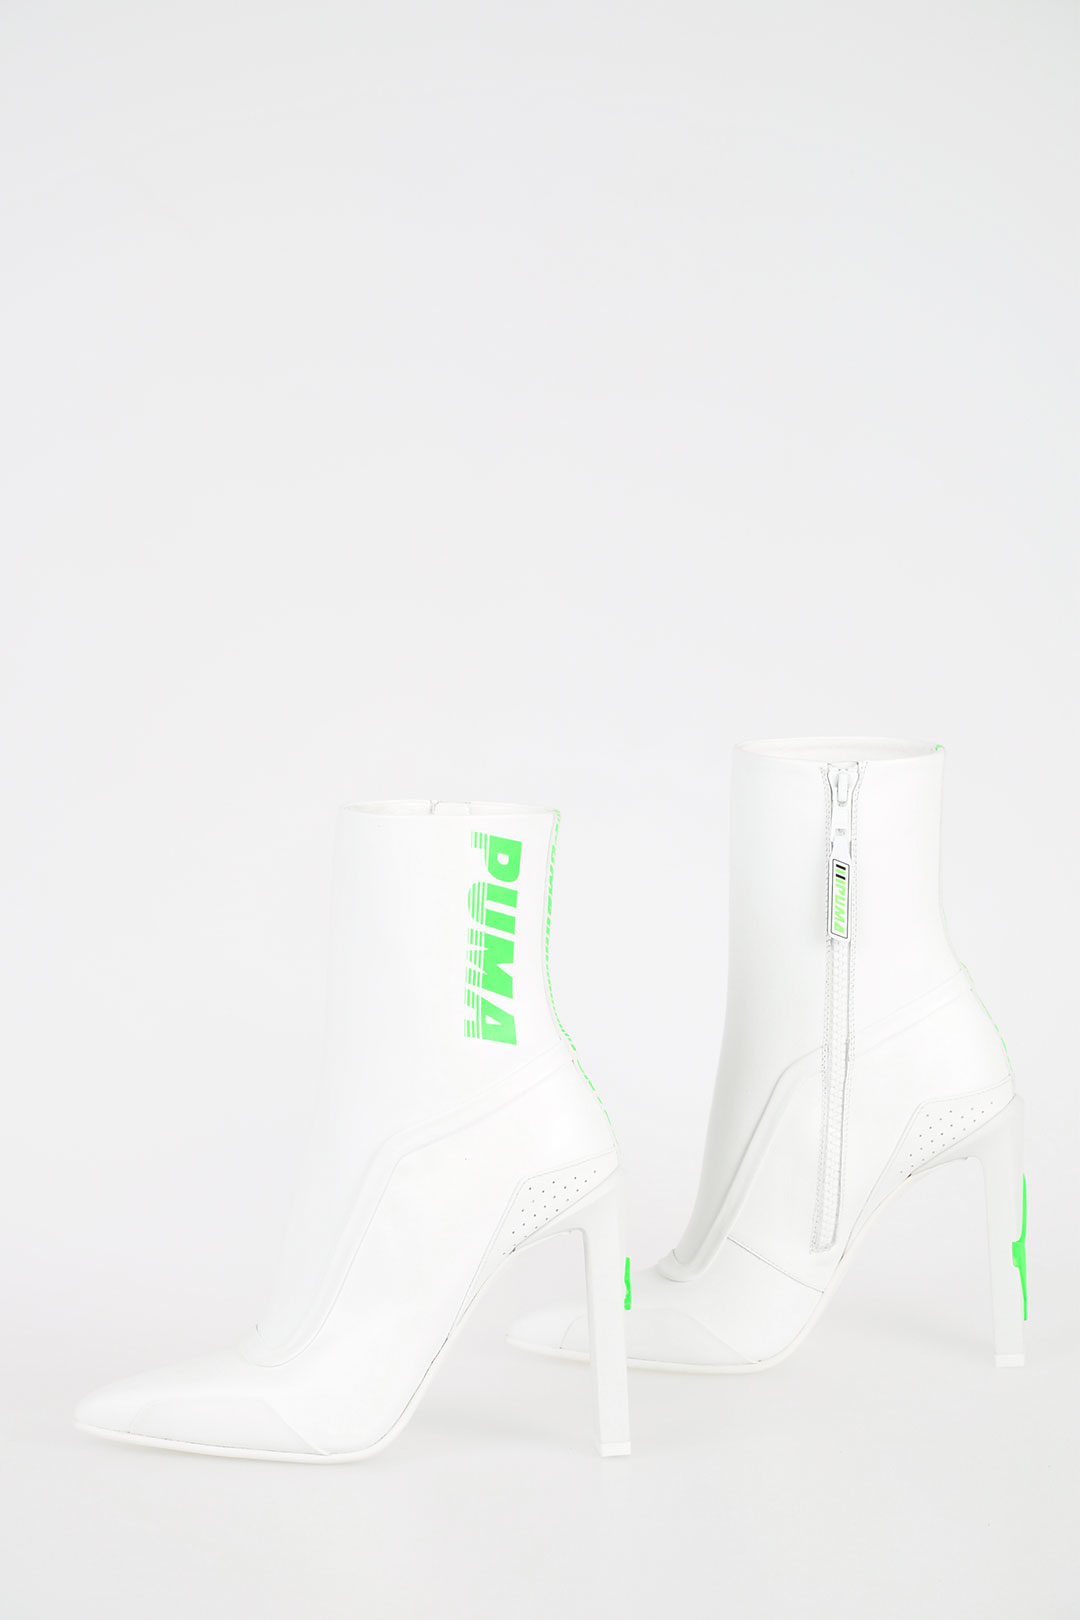 boots that stock fenty